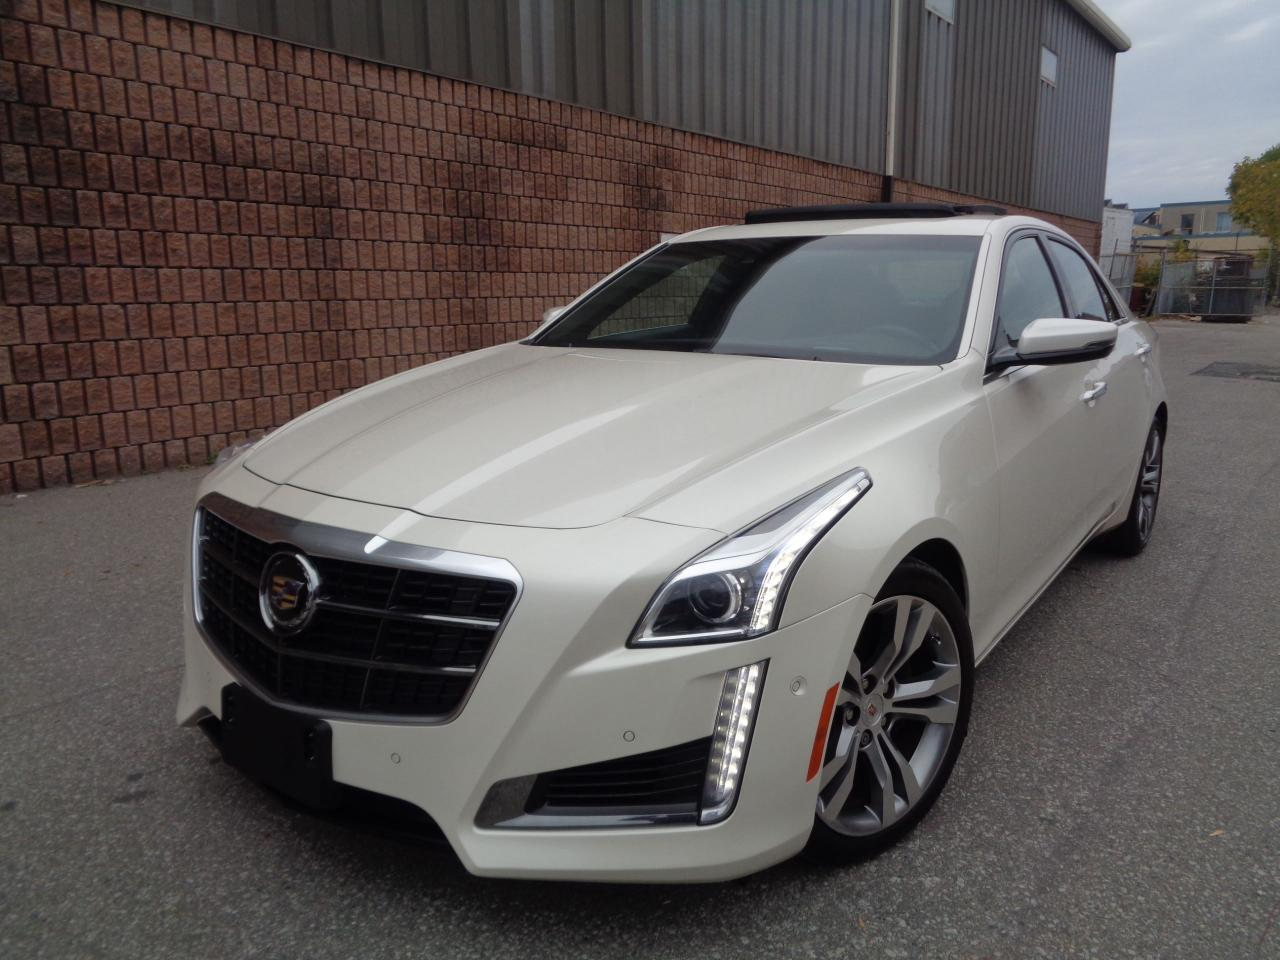 2014 Cadillac Cts For Sale >> Used 2014 Cadillac CTS V-SPORT ***SOLD*** for Sale in ...